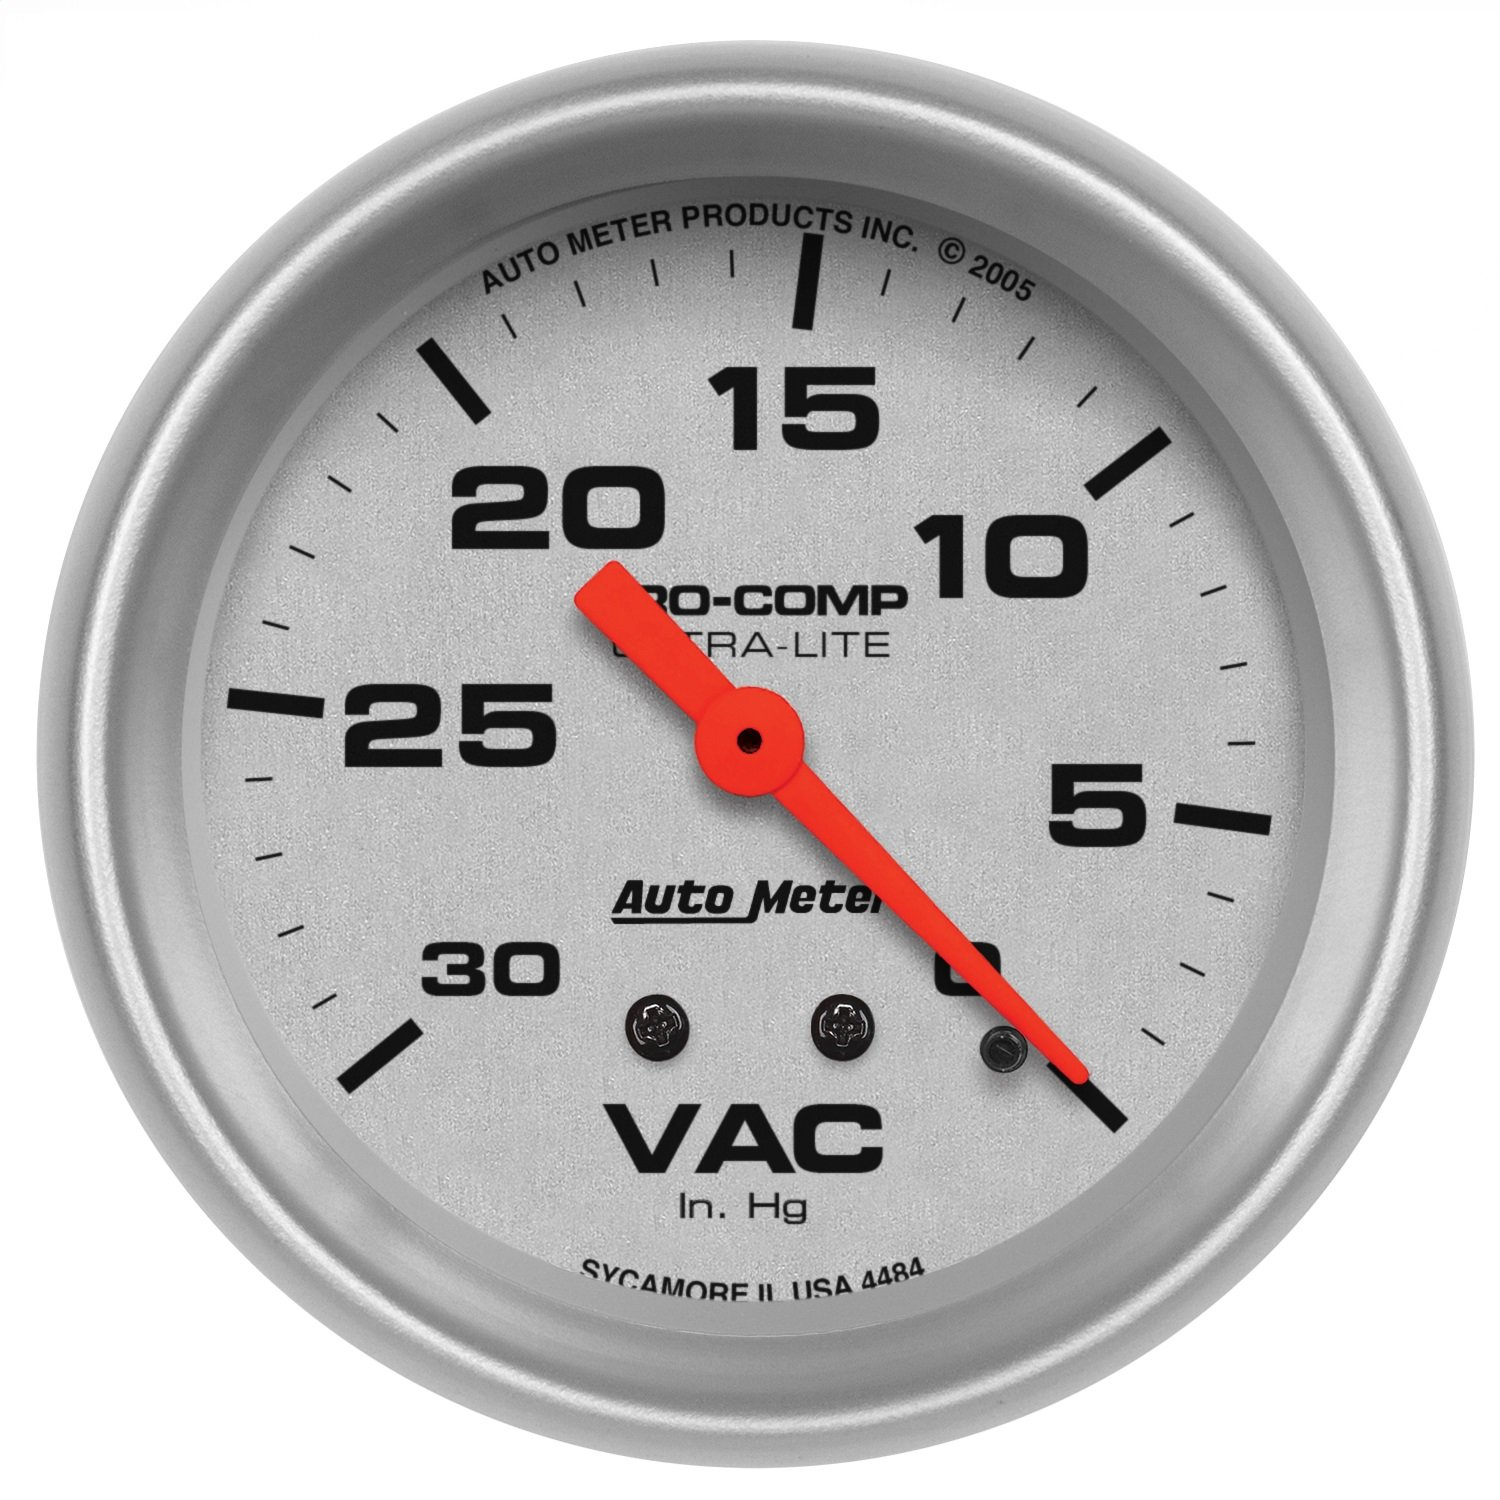 Auto Meter 4484 Ultra-Lite Mechanical Vacuum Gauge by AUTO METER